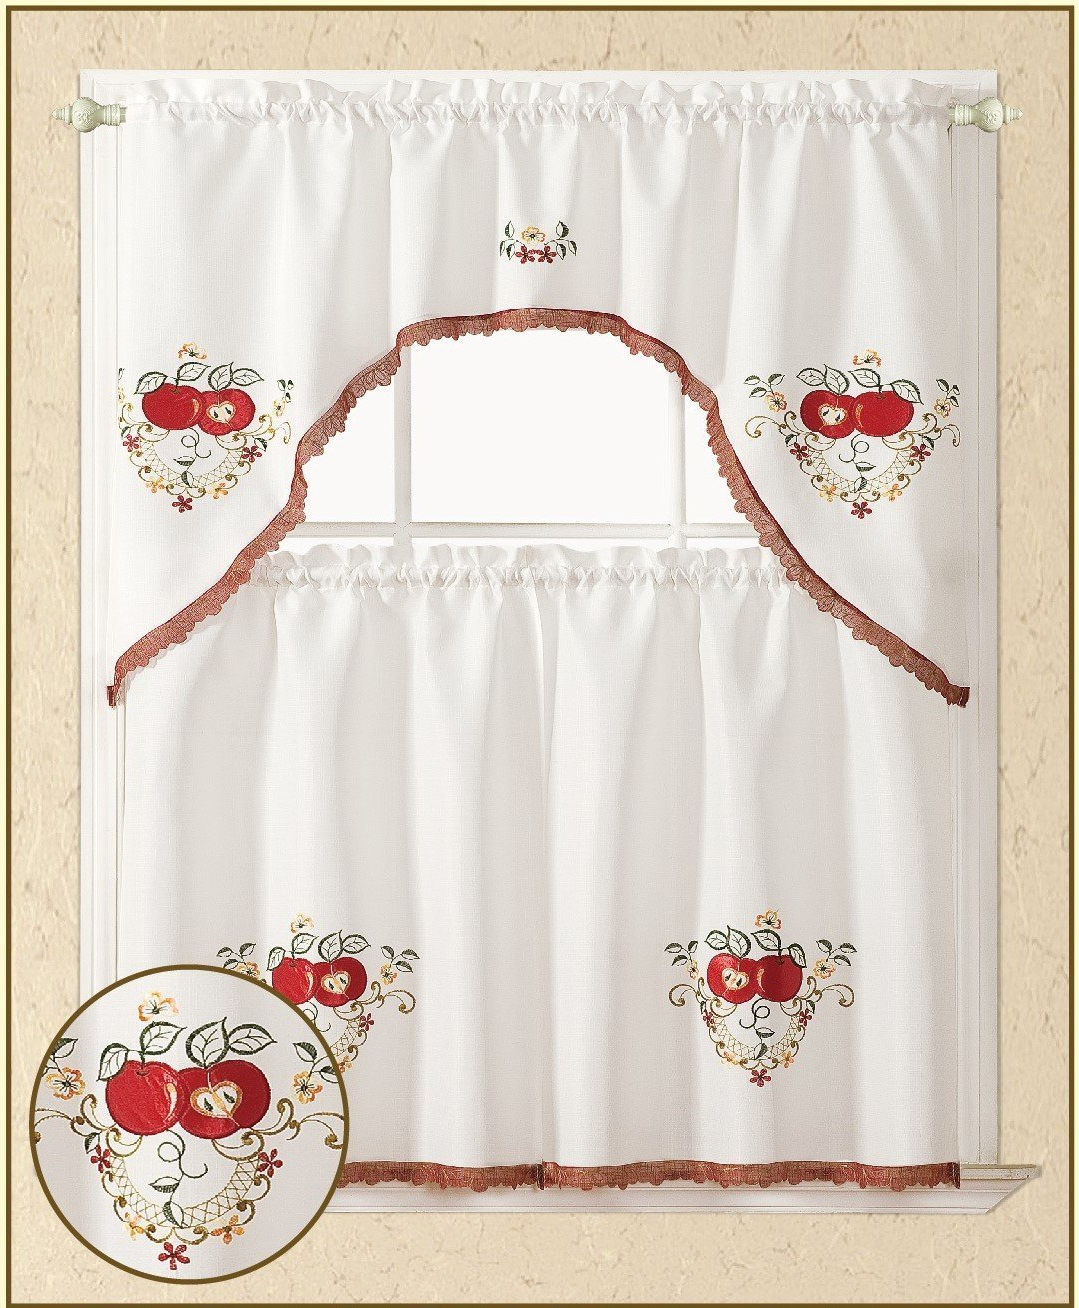 Delicious Apples Kitchen Curtain Tier And Valance Sets Intended For Current All American Collection 3pc Apples Kitchen Curtain Set (View 11 of 20)